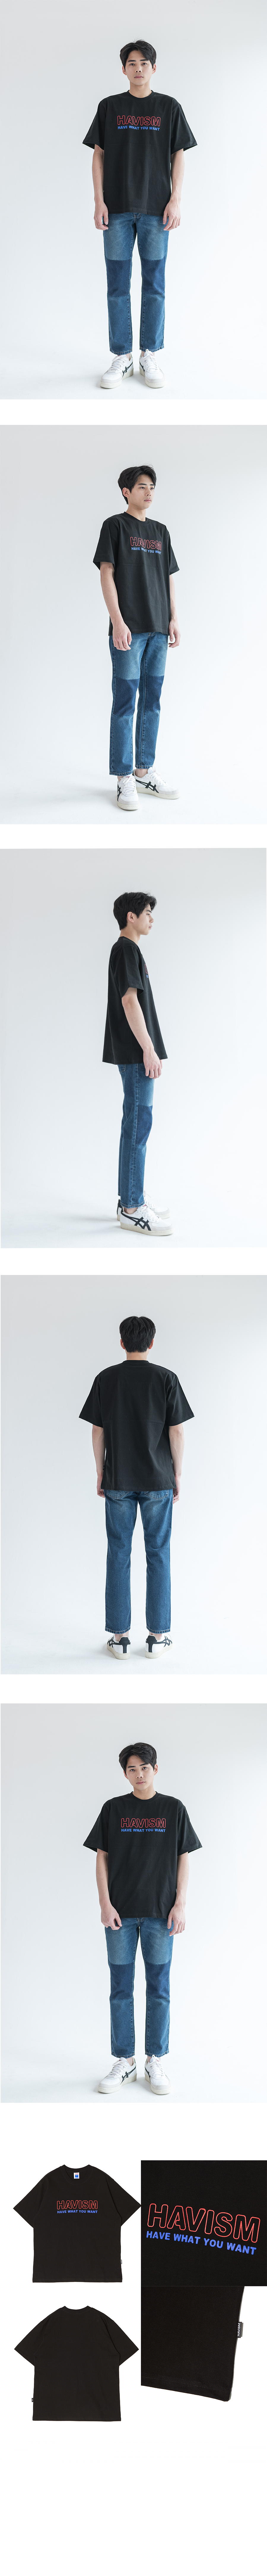 FRONT MIX LOGO TEE BLACK.jpg